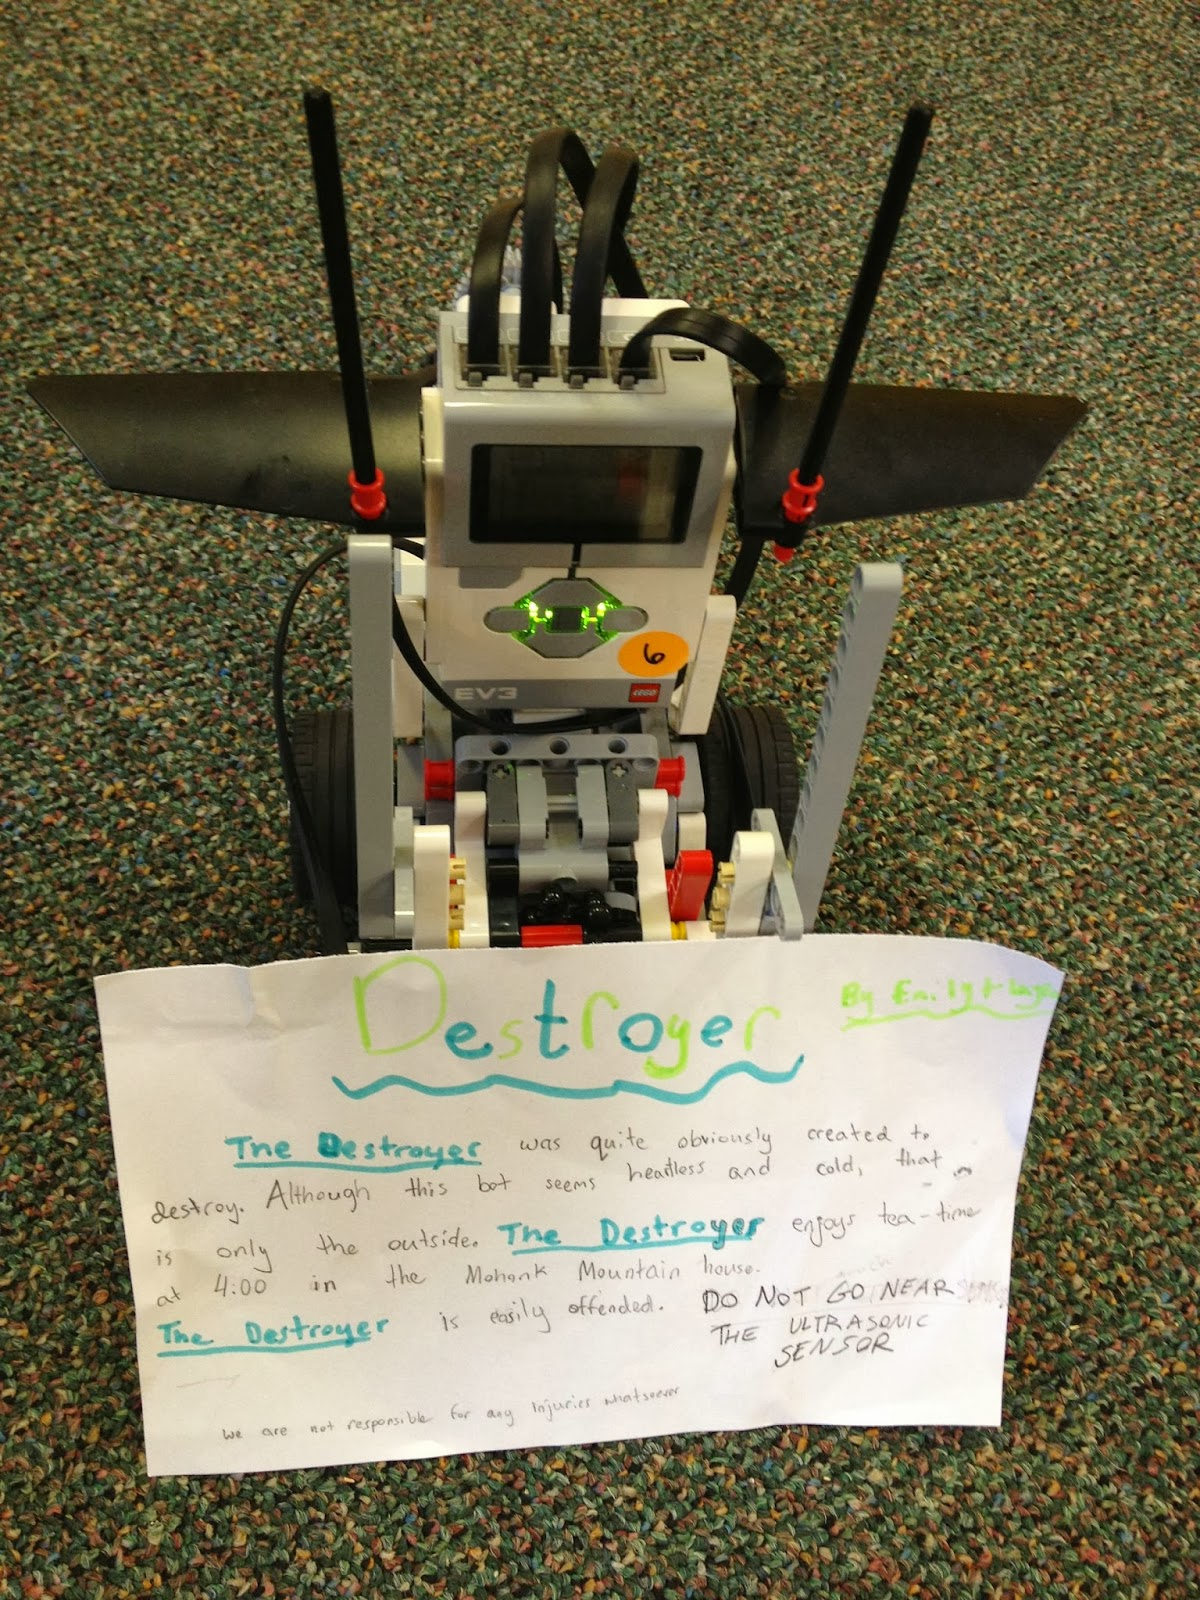 LEGO Teacher: First experiences with MINDSTORMS EV3